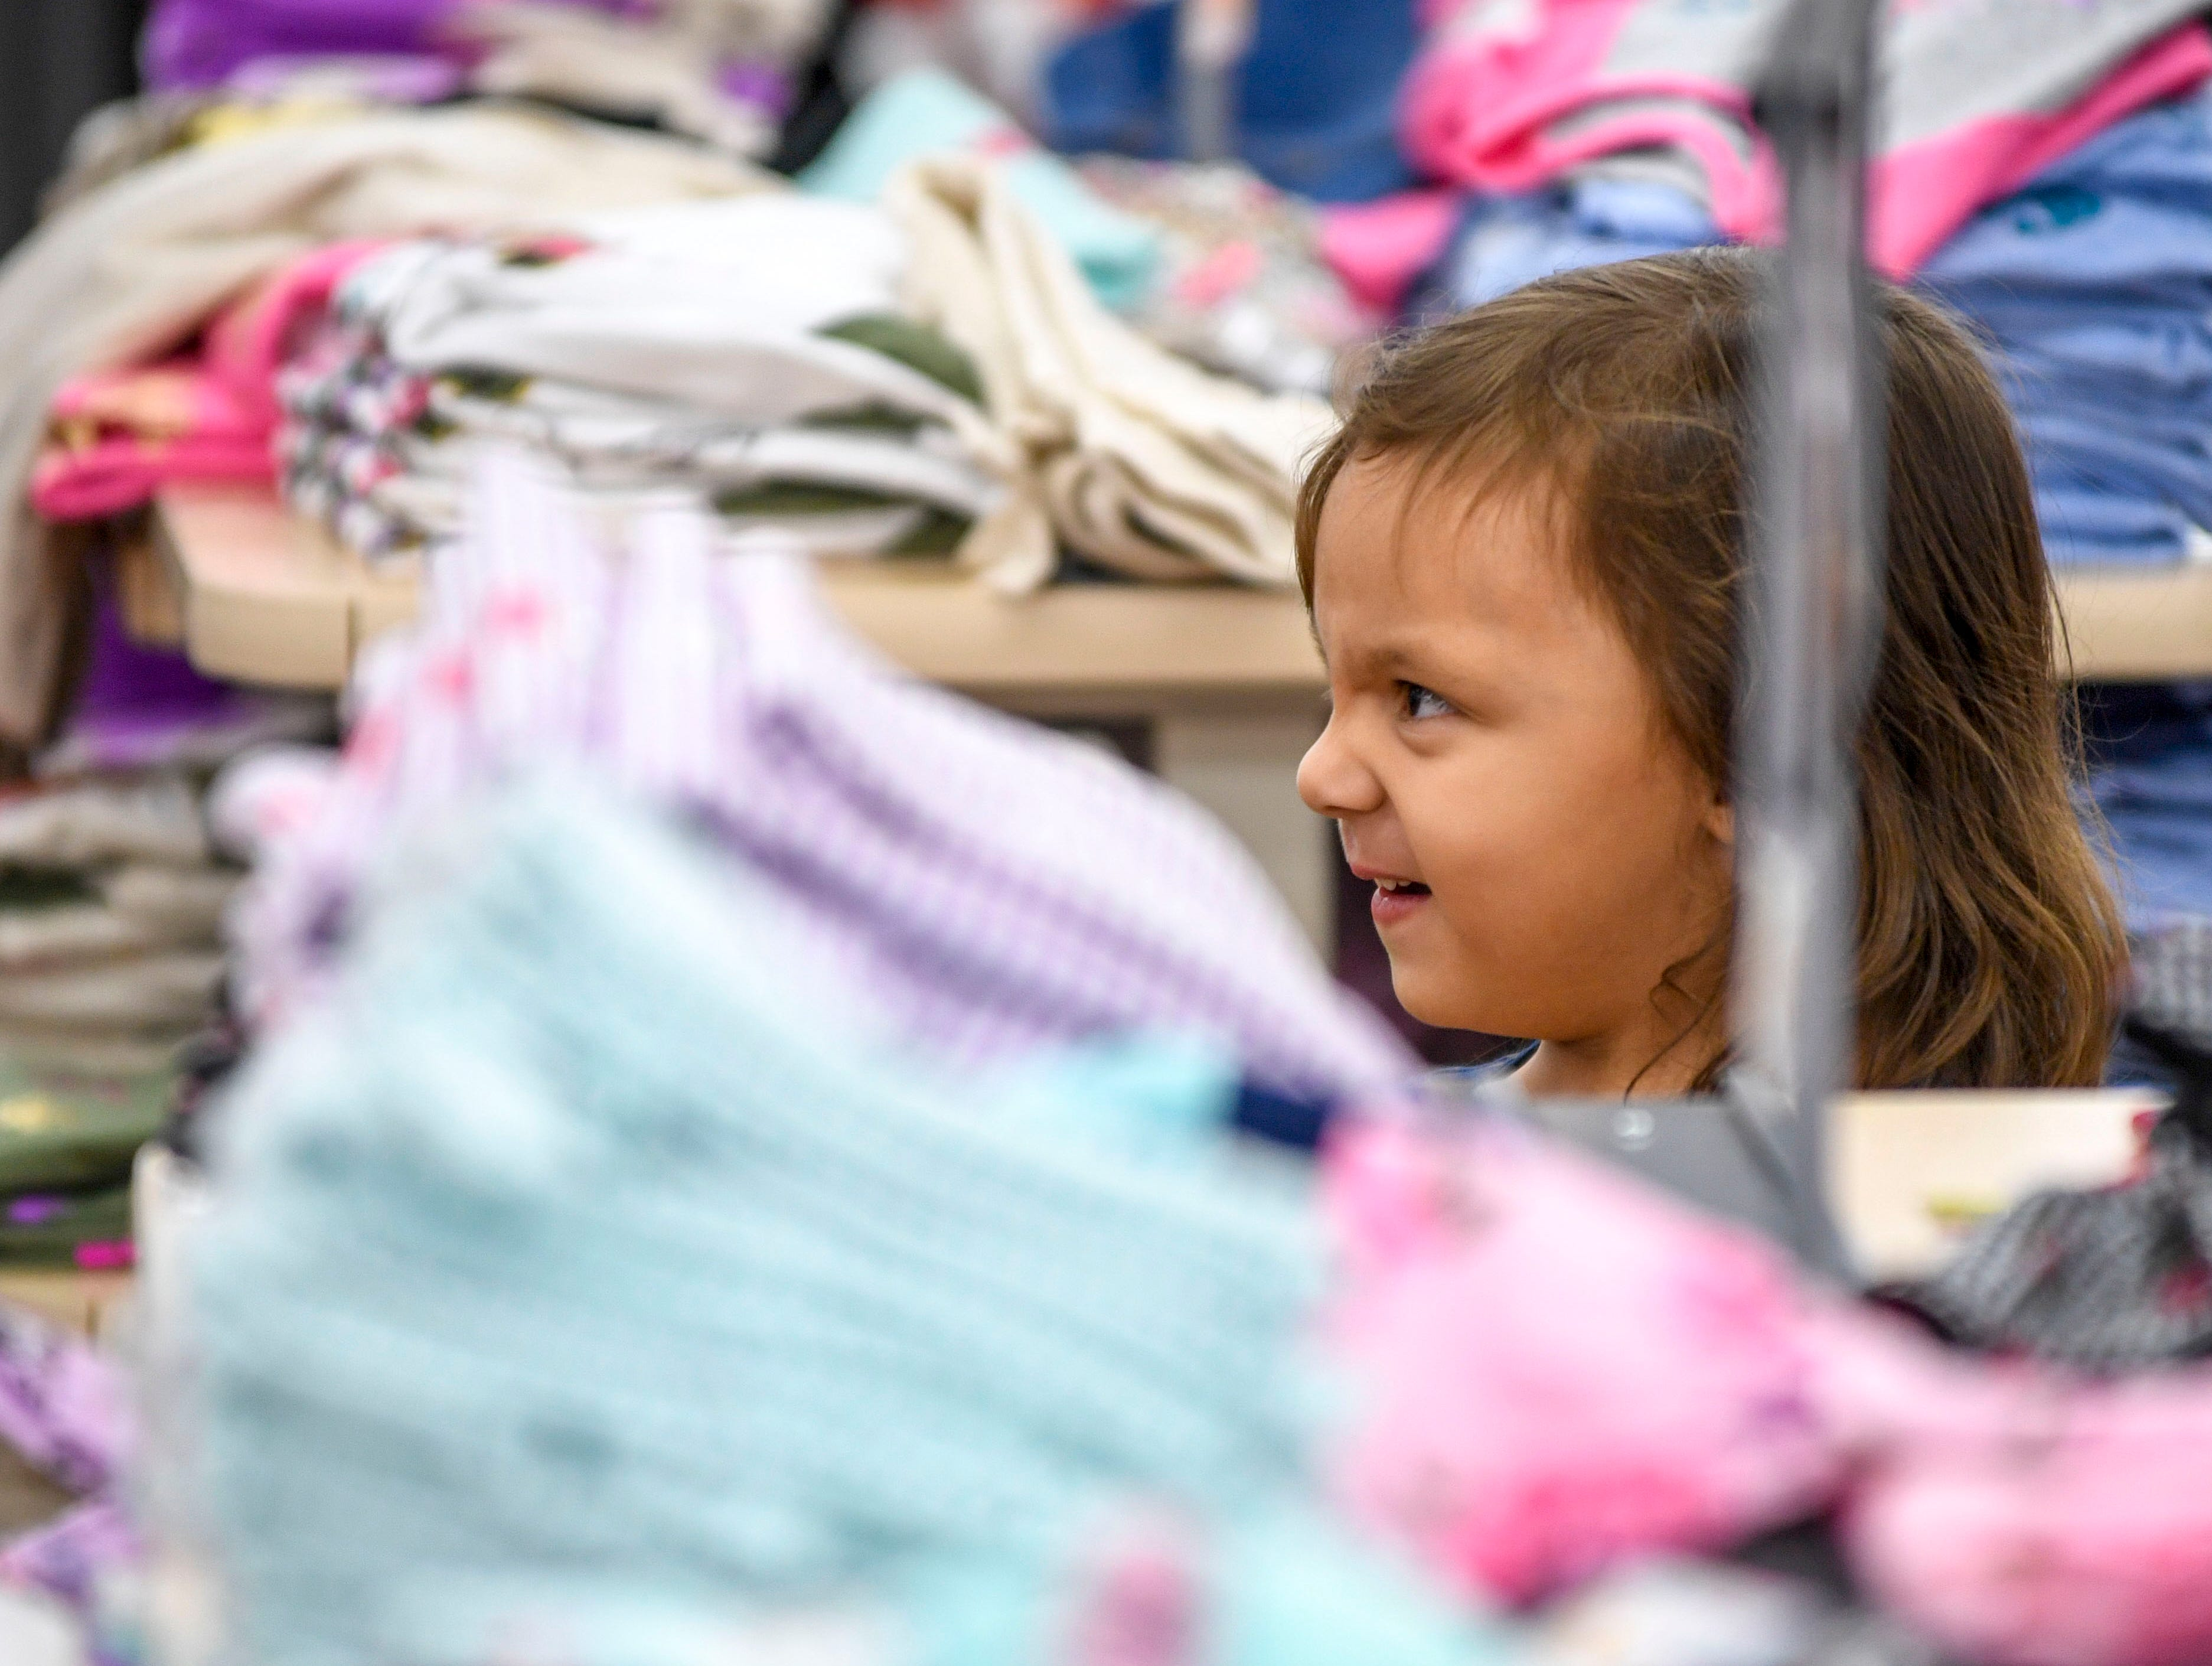 Allie Gordon, 3, reacts while shopping for clothes during shopping time for the annual Shop with a Cop program at Walmart in Milan, Tenn., on Thursday, Dec. 13, 2018.